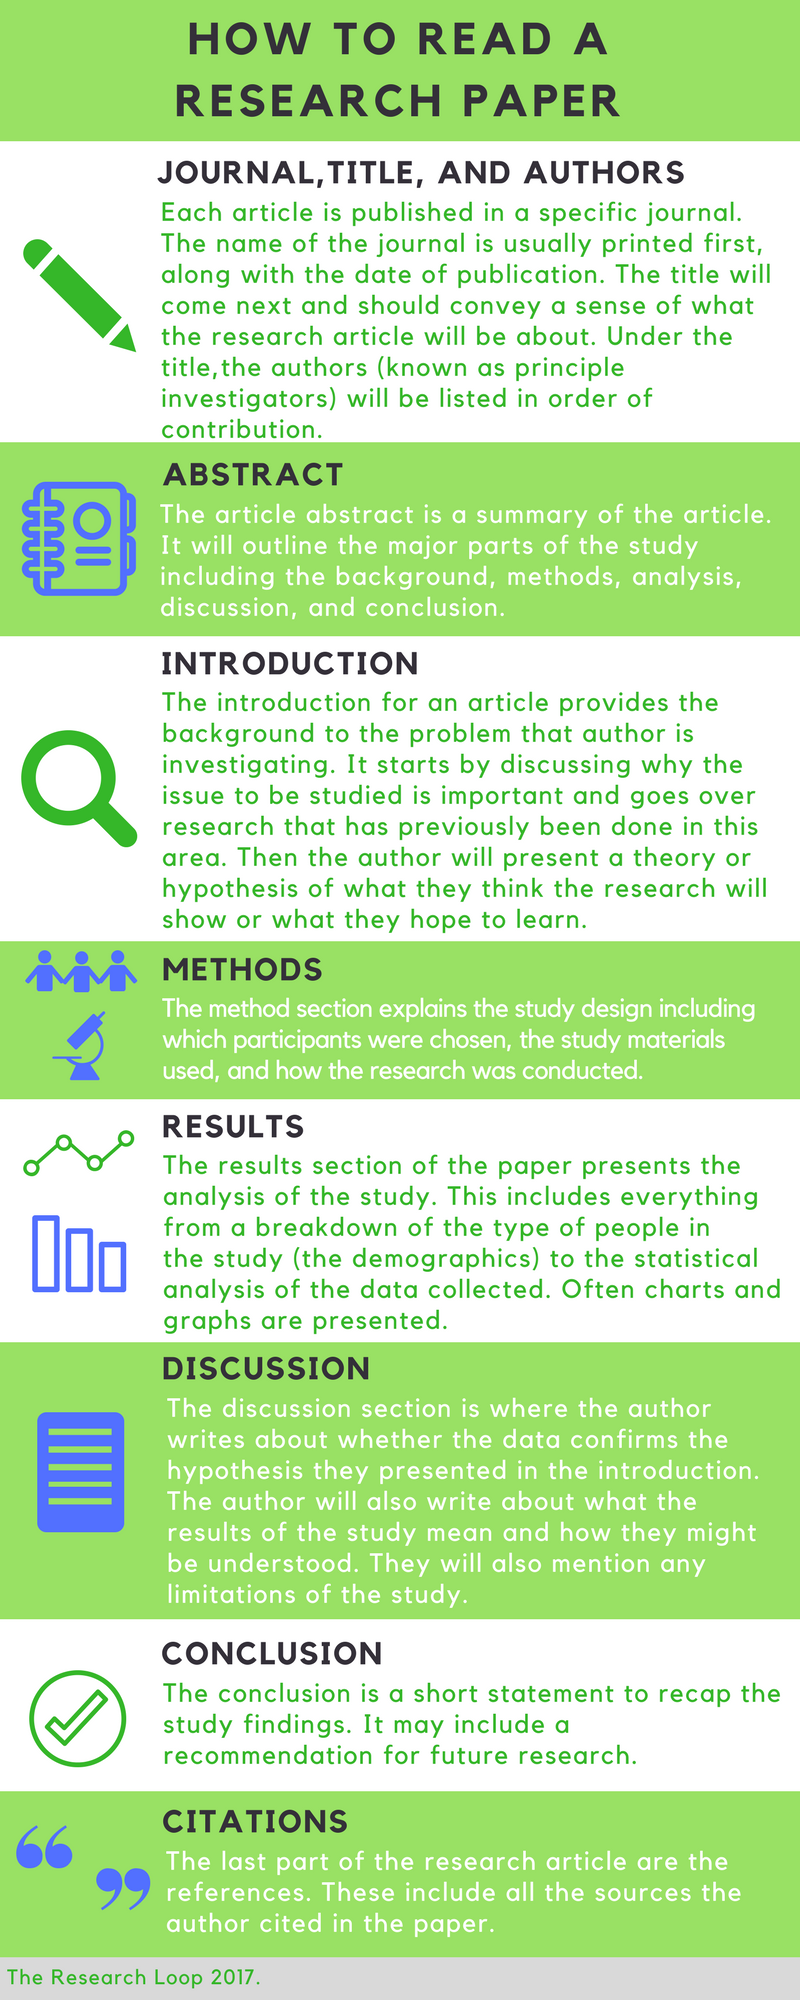 How to Read a Research Paper(1)